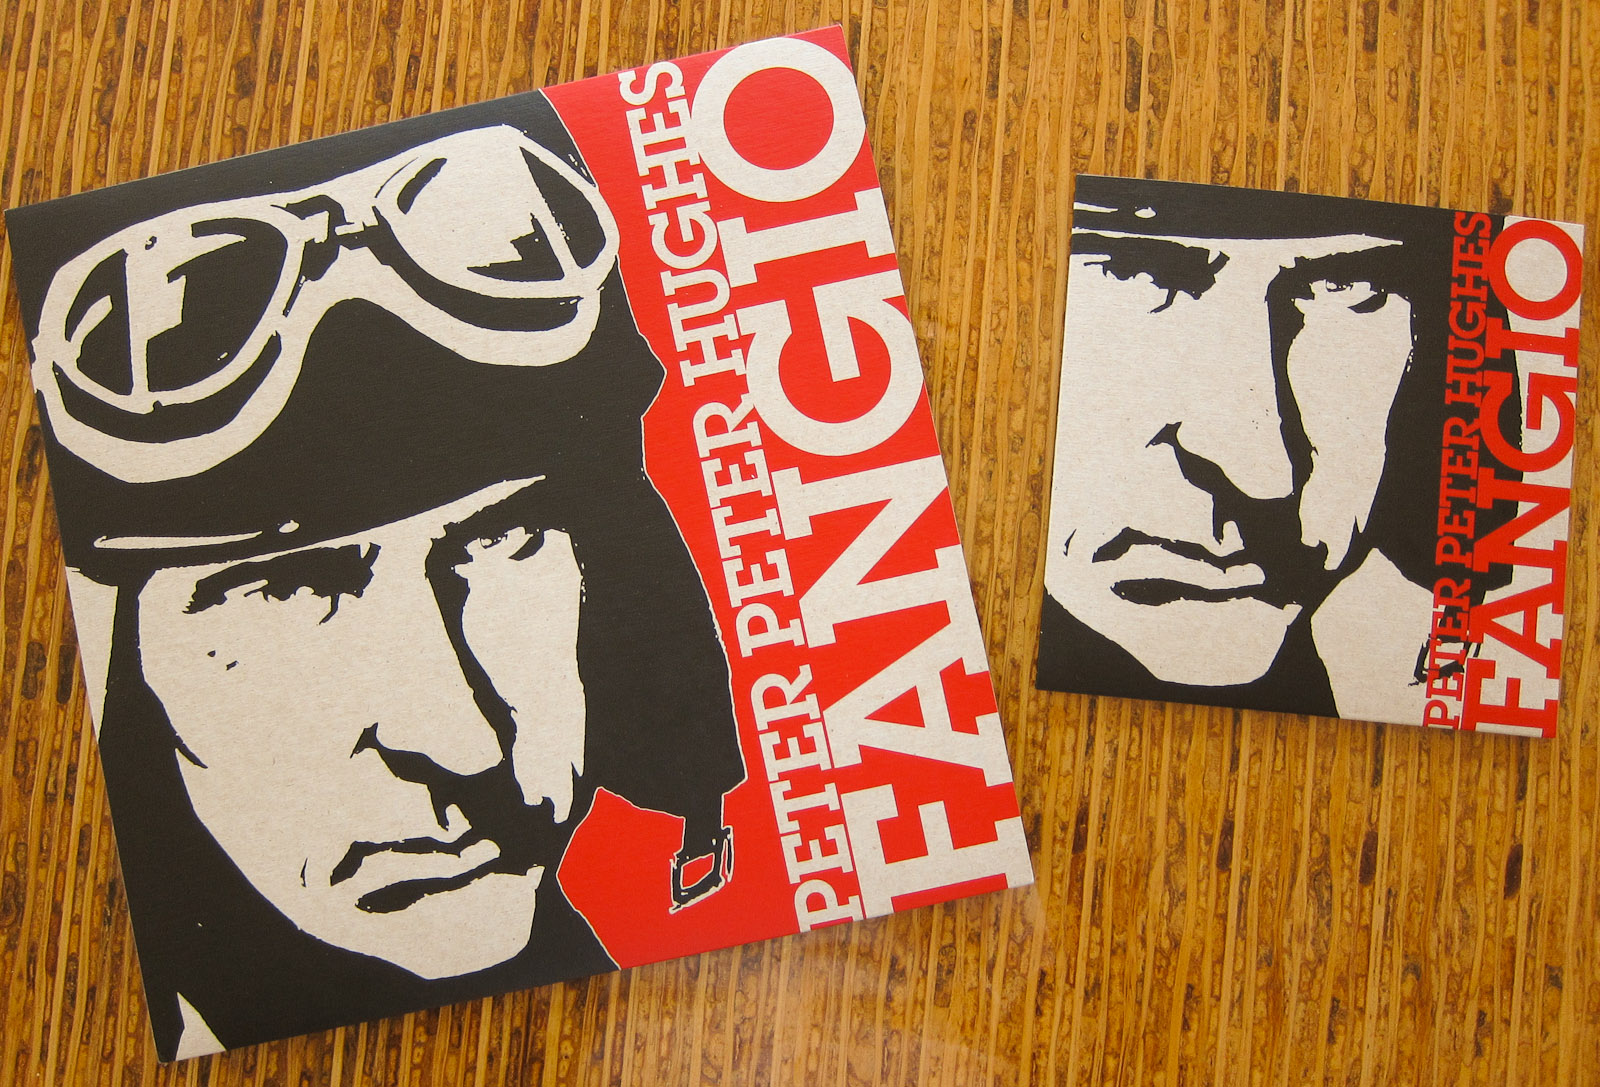 Fangio fronts